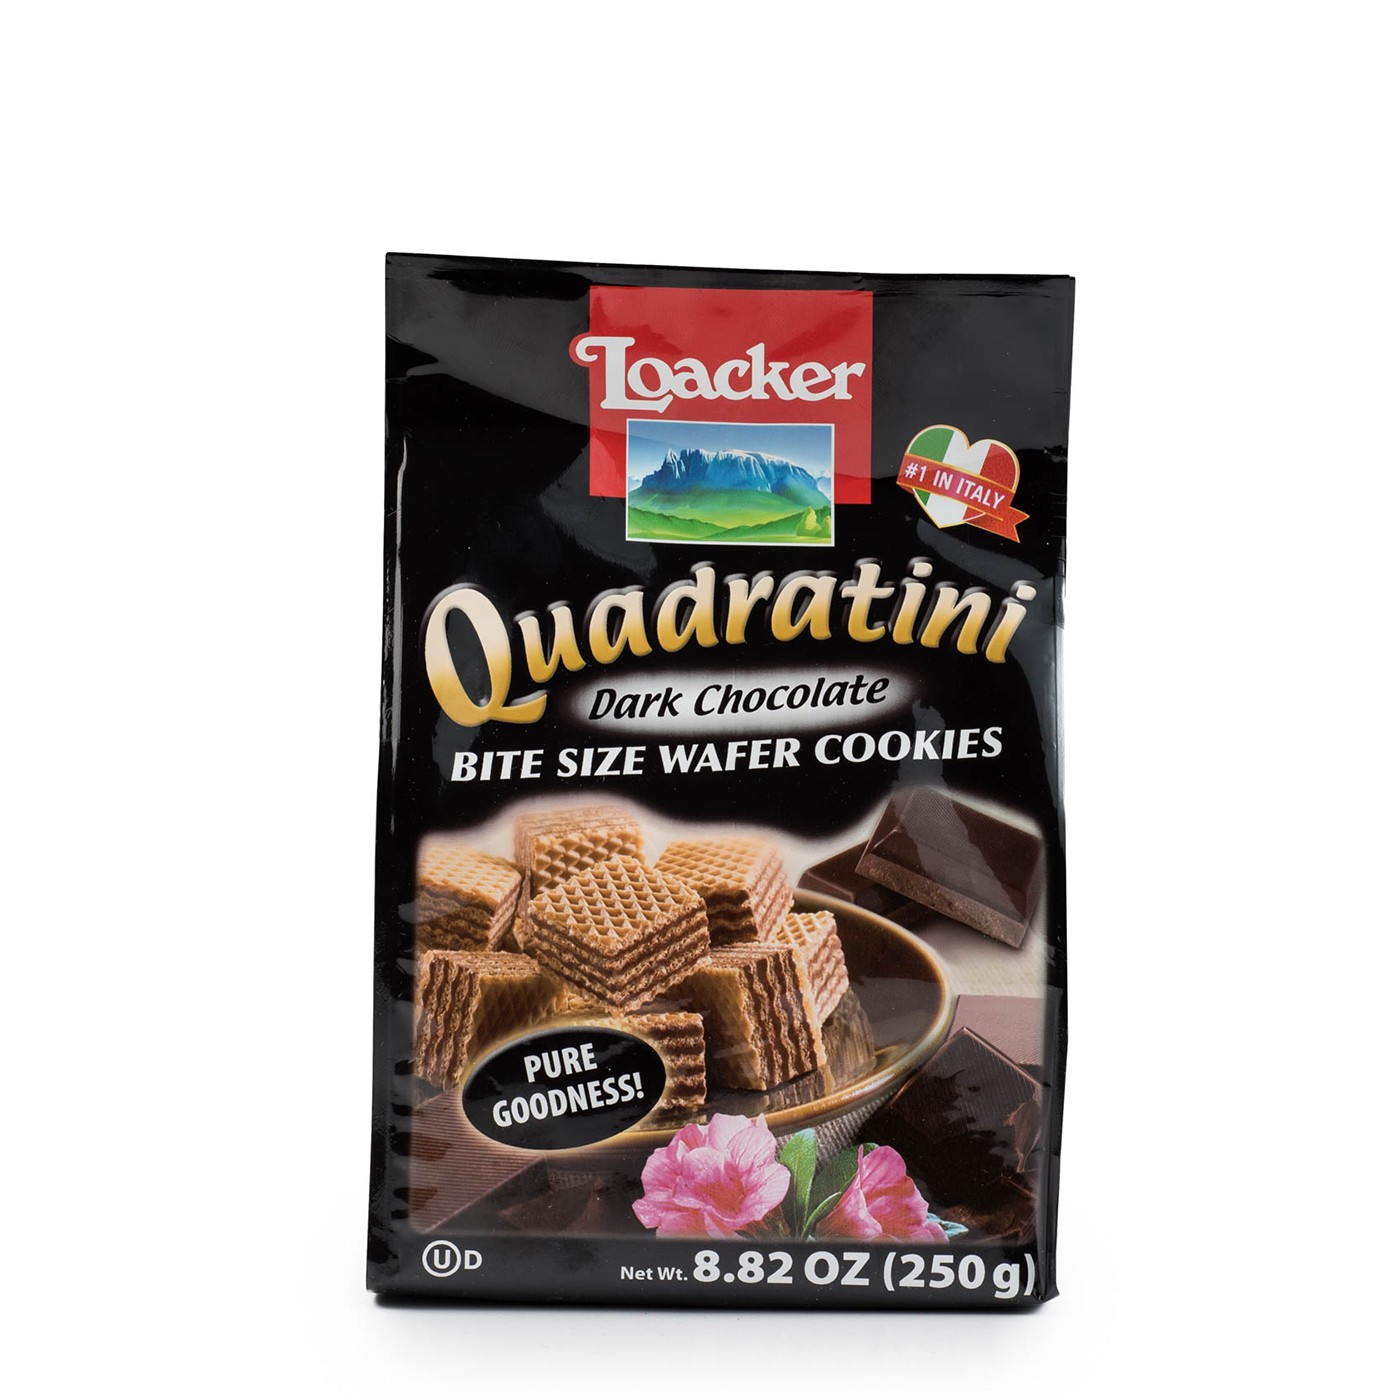 Dark Chocolate Quadratini 8.8 oz